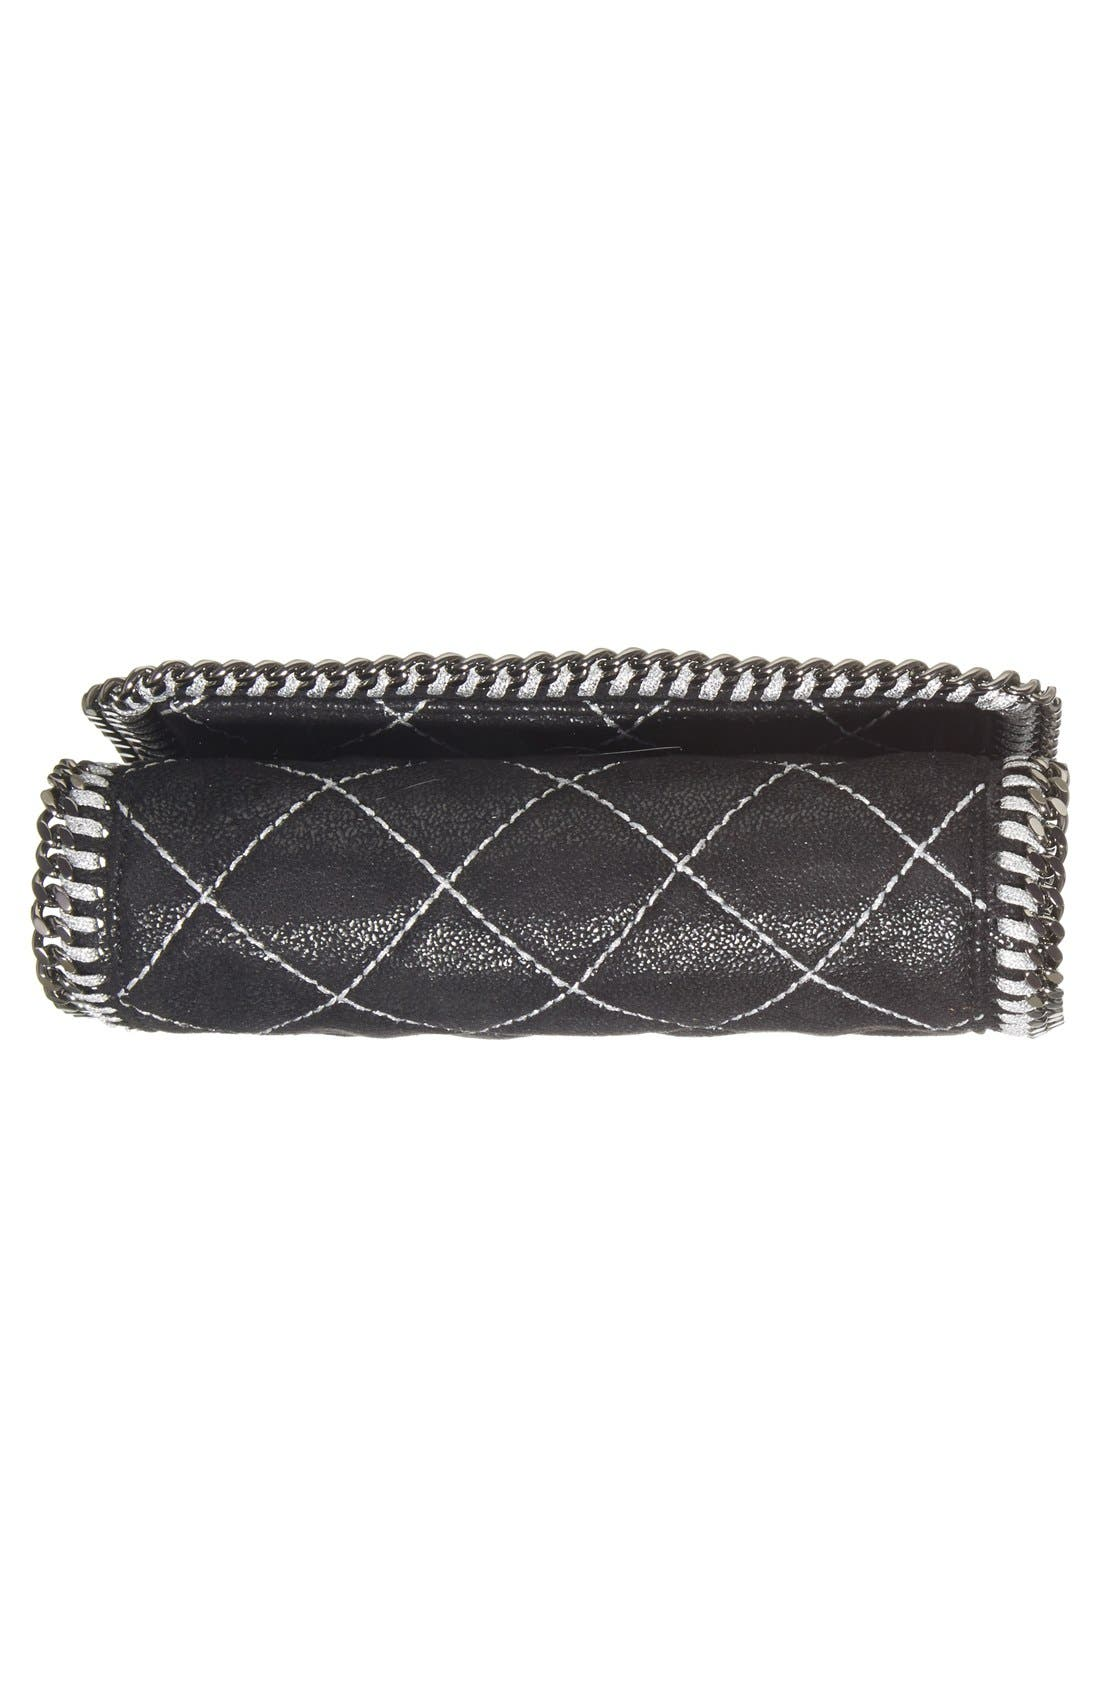 'Falabella' Quilted Faux Leather Crossbody Bag,                             Alternate thumbnail 22, color,